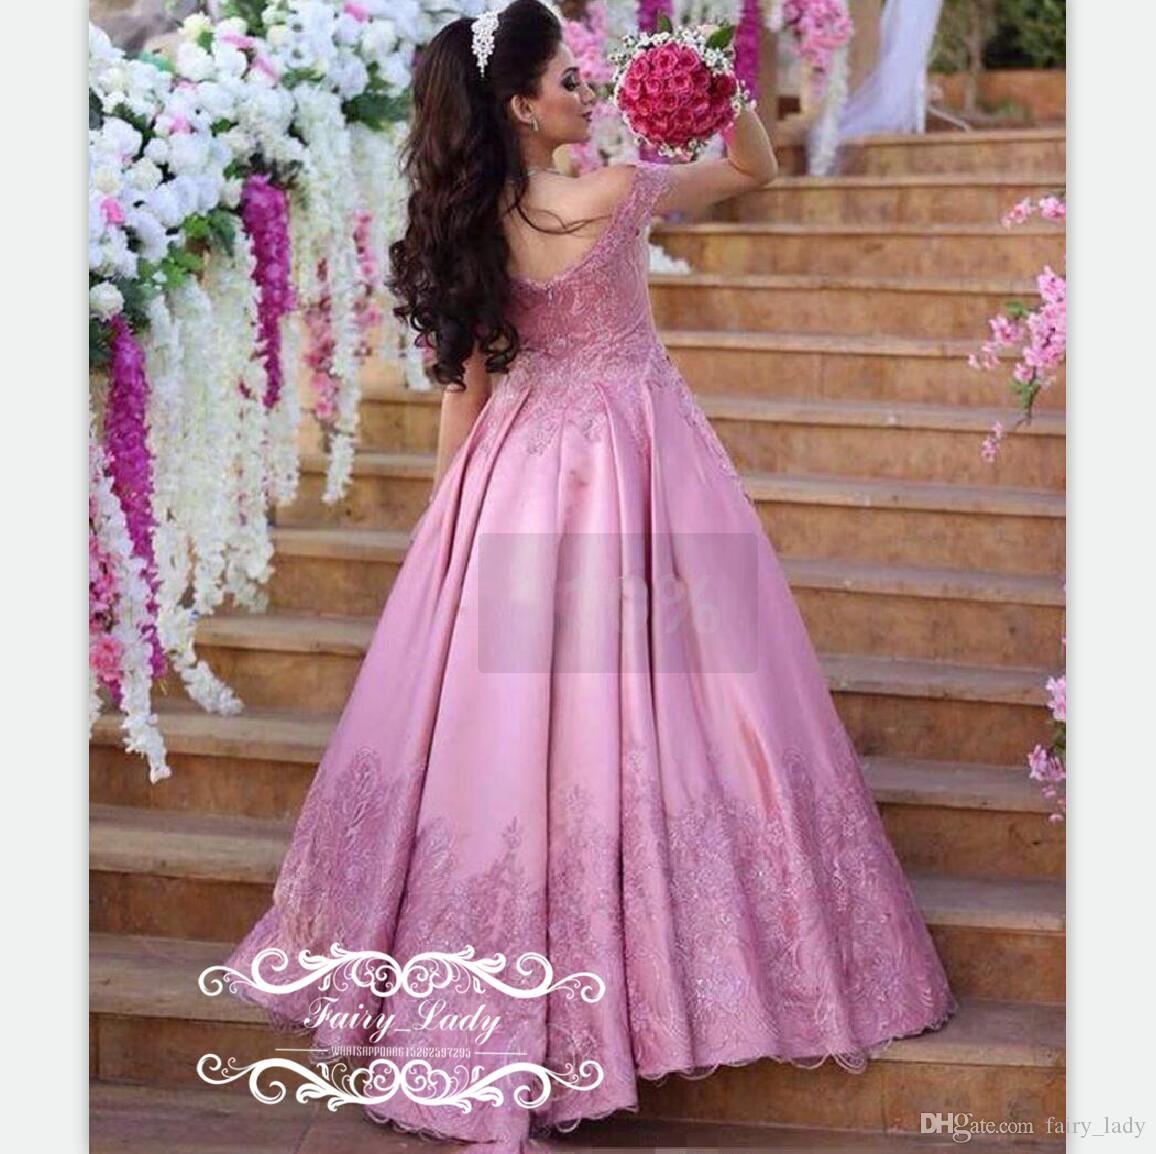 Puffy A Line Long Pink Lace Evening Dresses With Sleeves 3D-Floral Appliques Beads Elegant Arabic 2017 Middle East Women Party Prom Gown